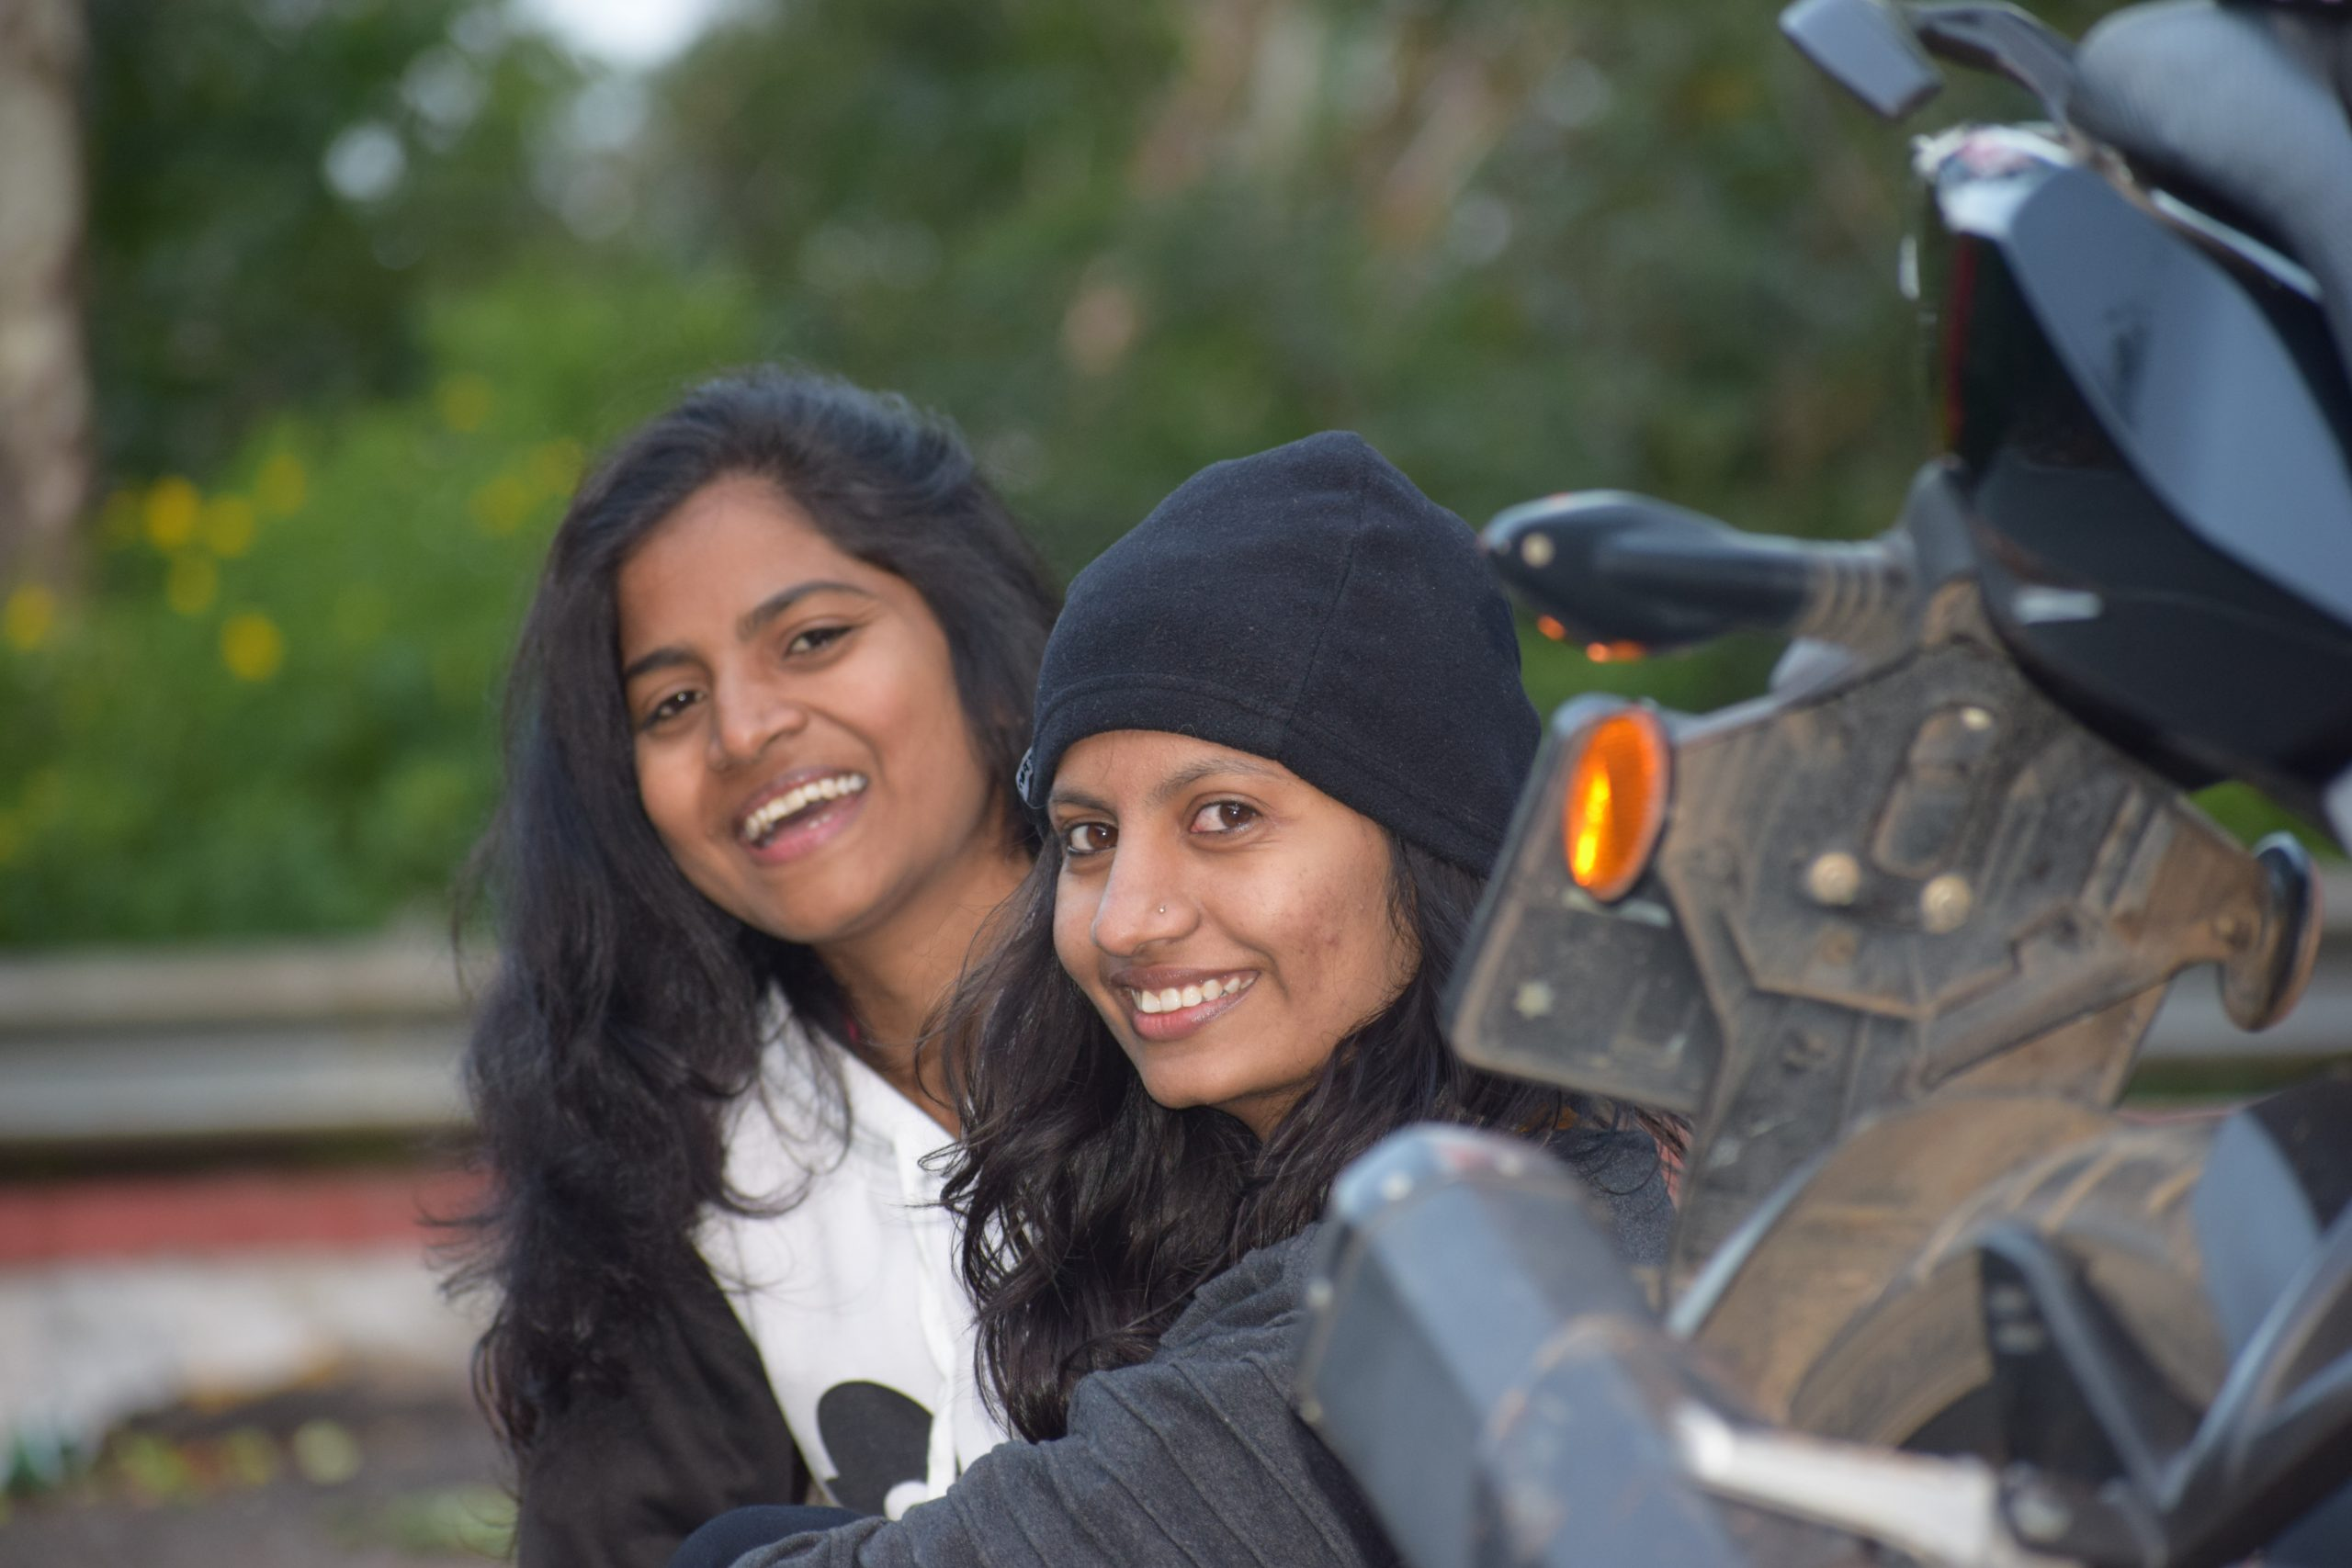 Two girls posing with a bike